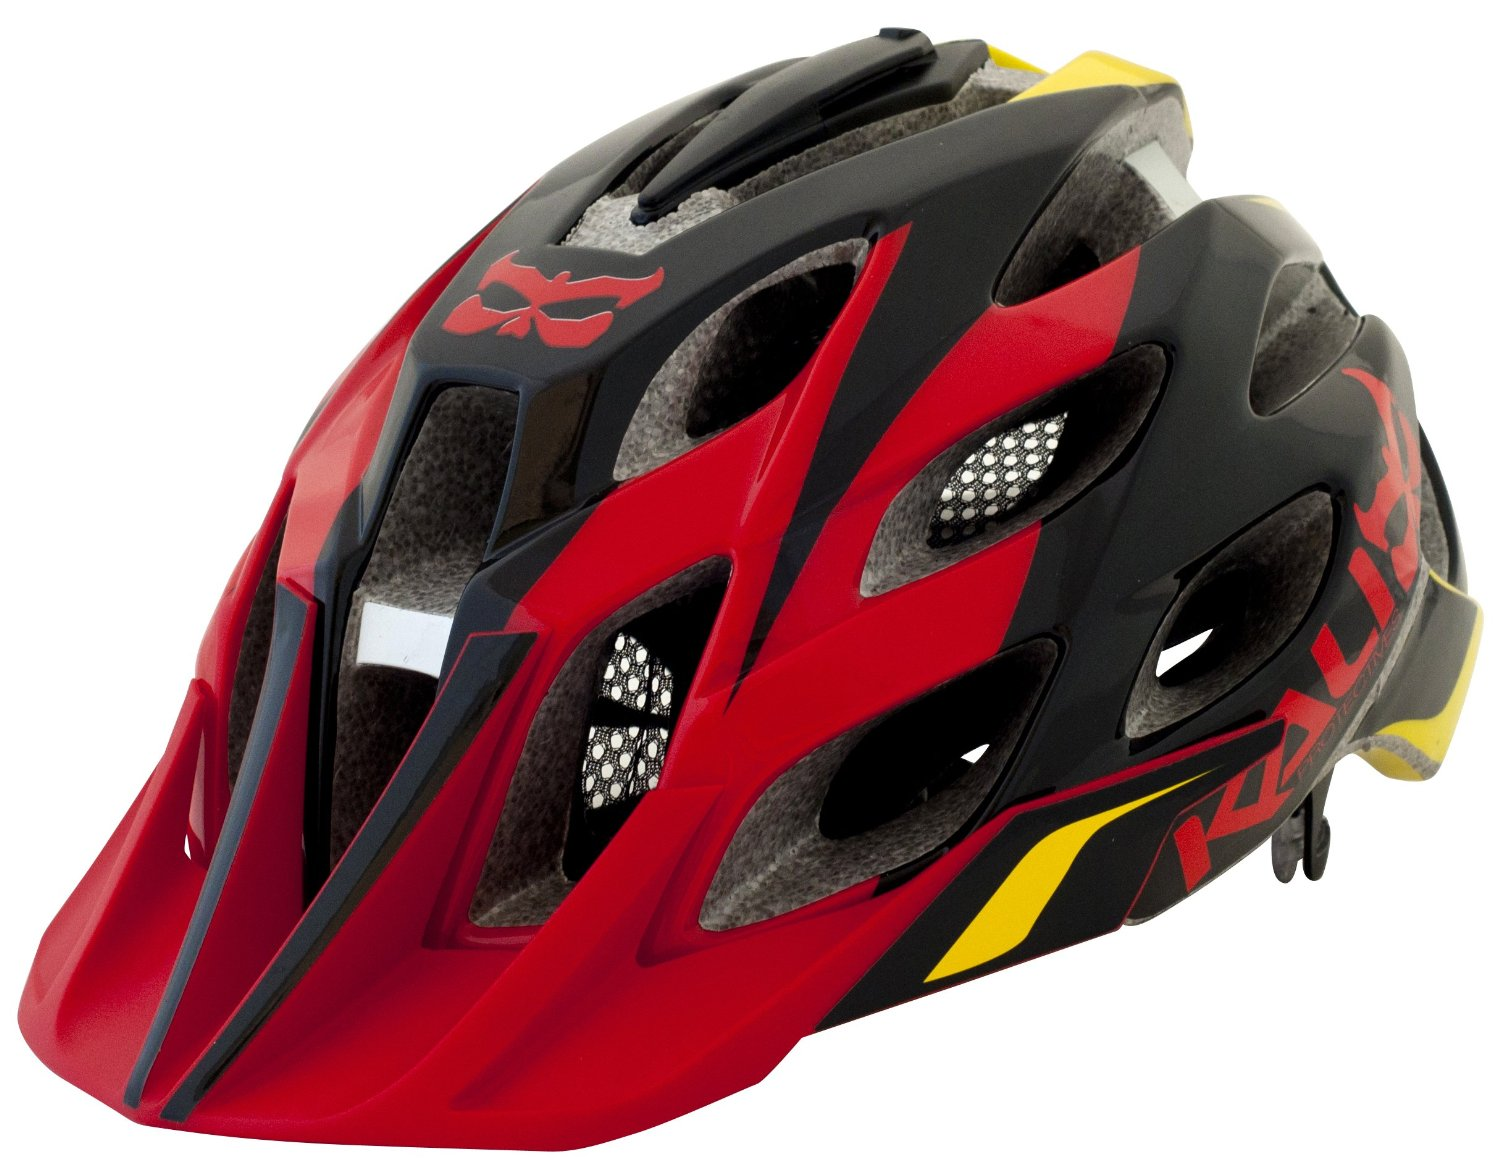 Colors of Kali Protectives Bicycle Helmets